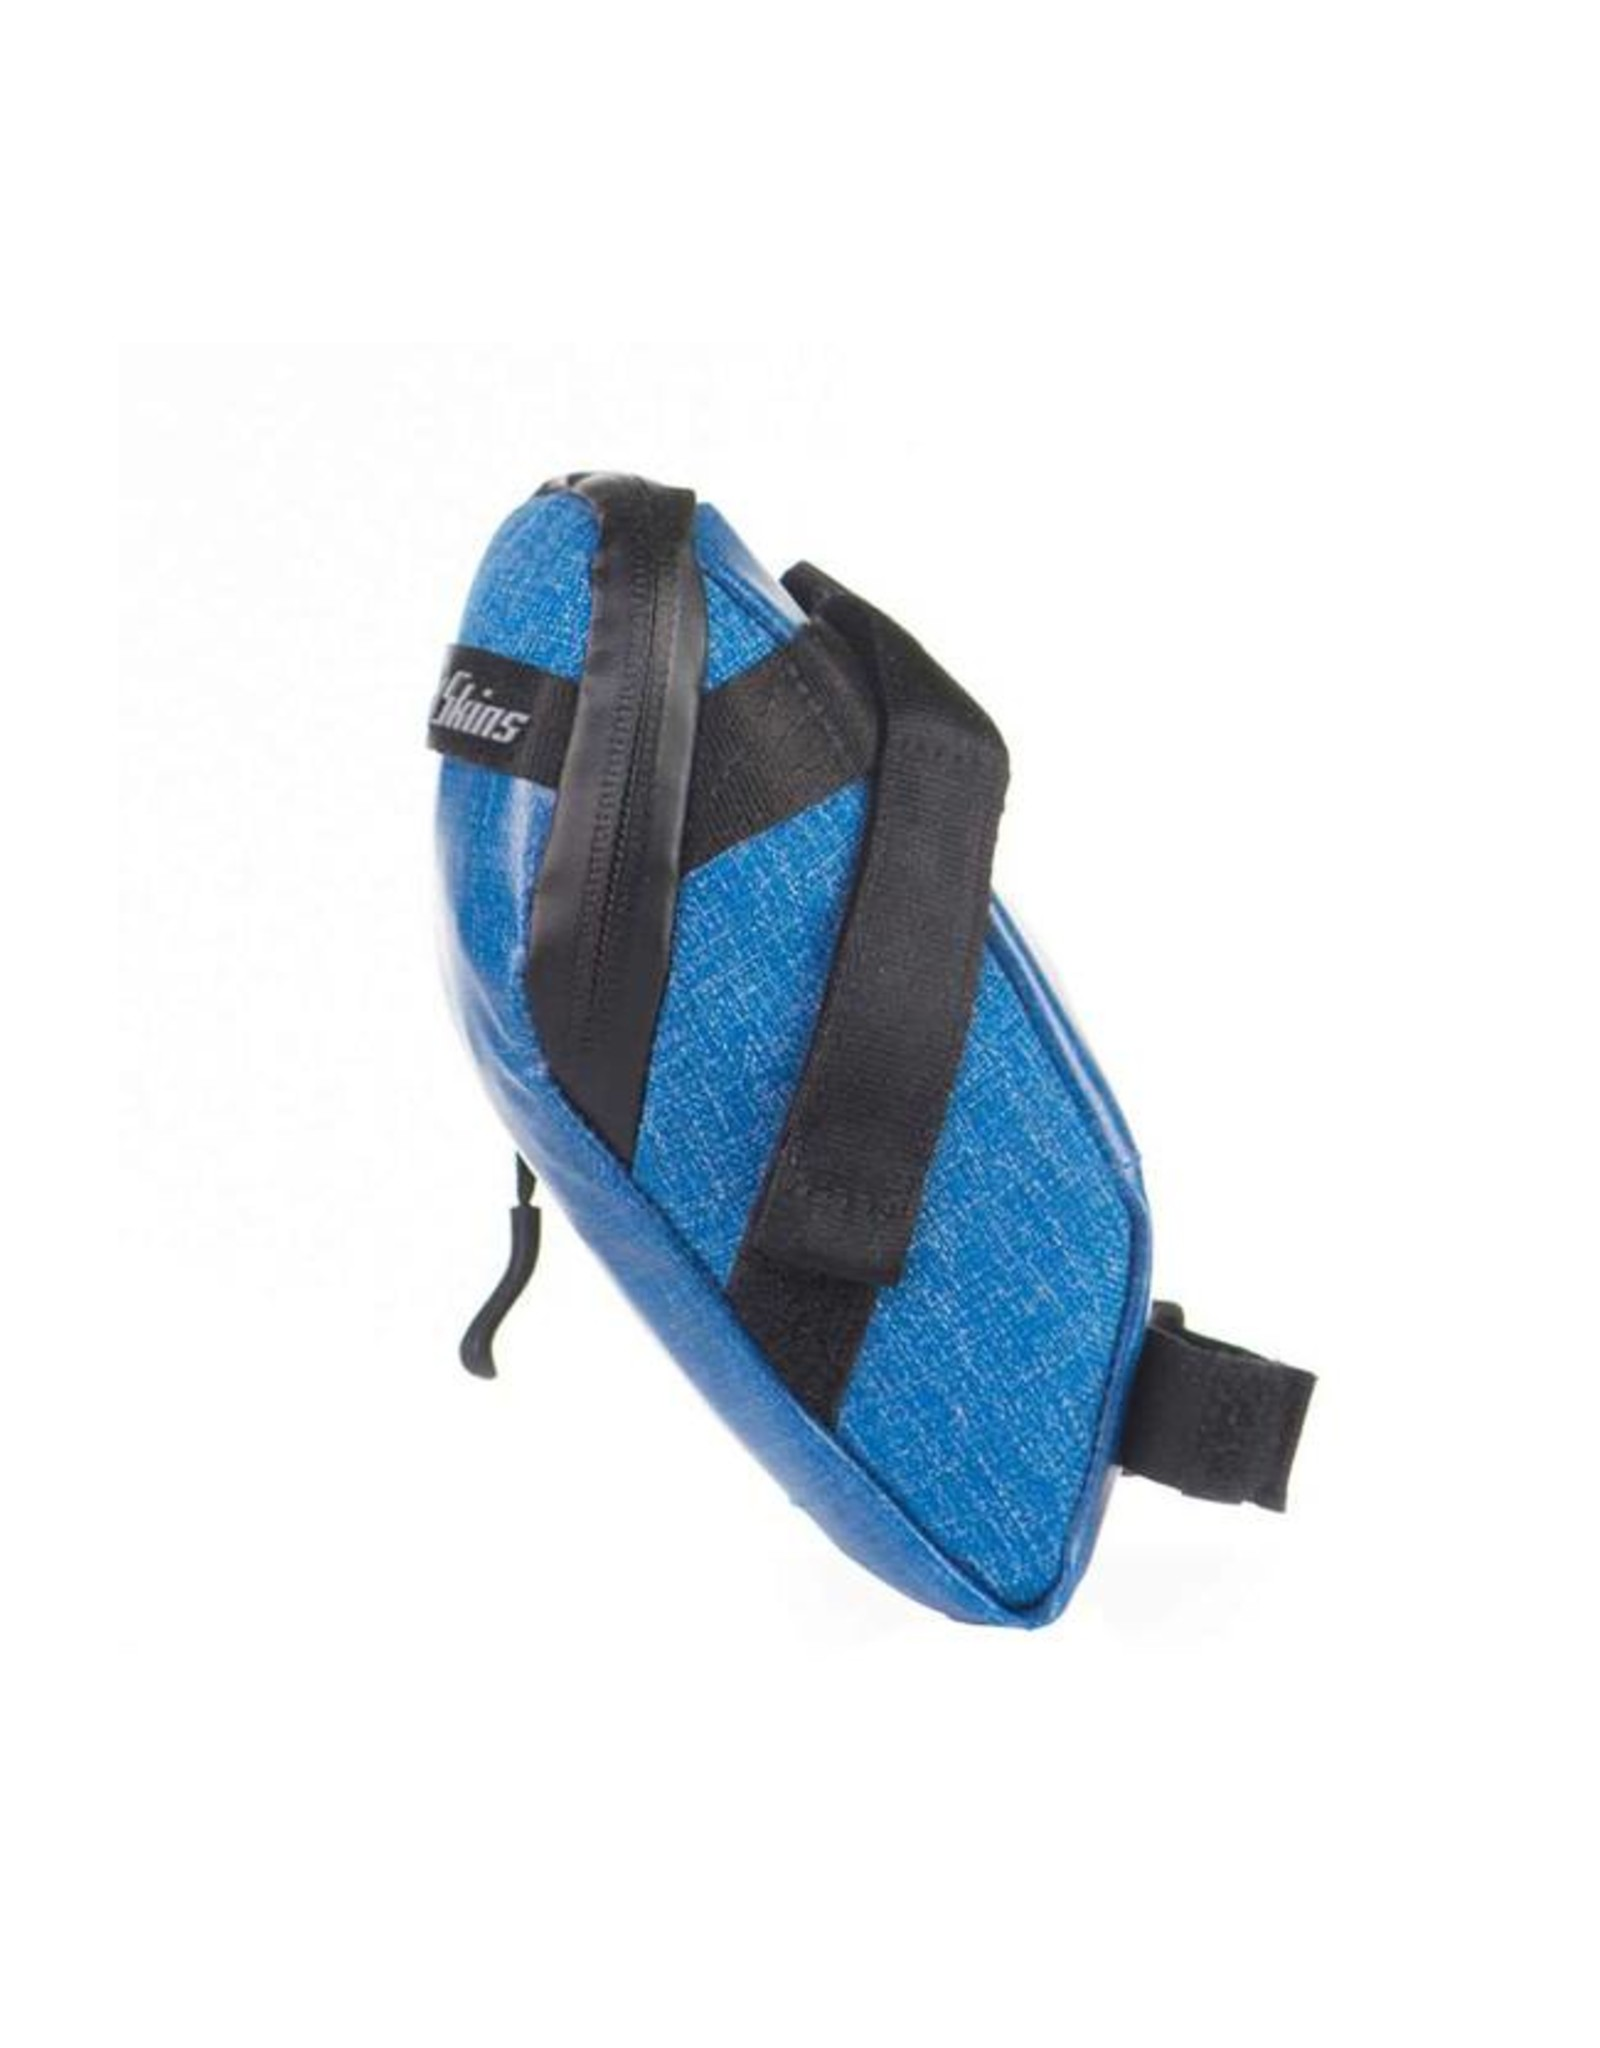 Lizard Skins Lizard Skins Super Cache Seat Bag: Electric Blue